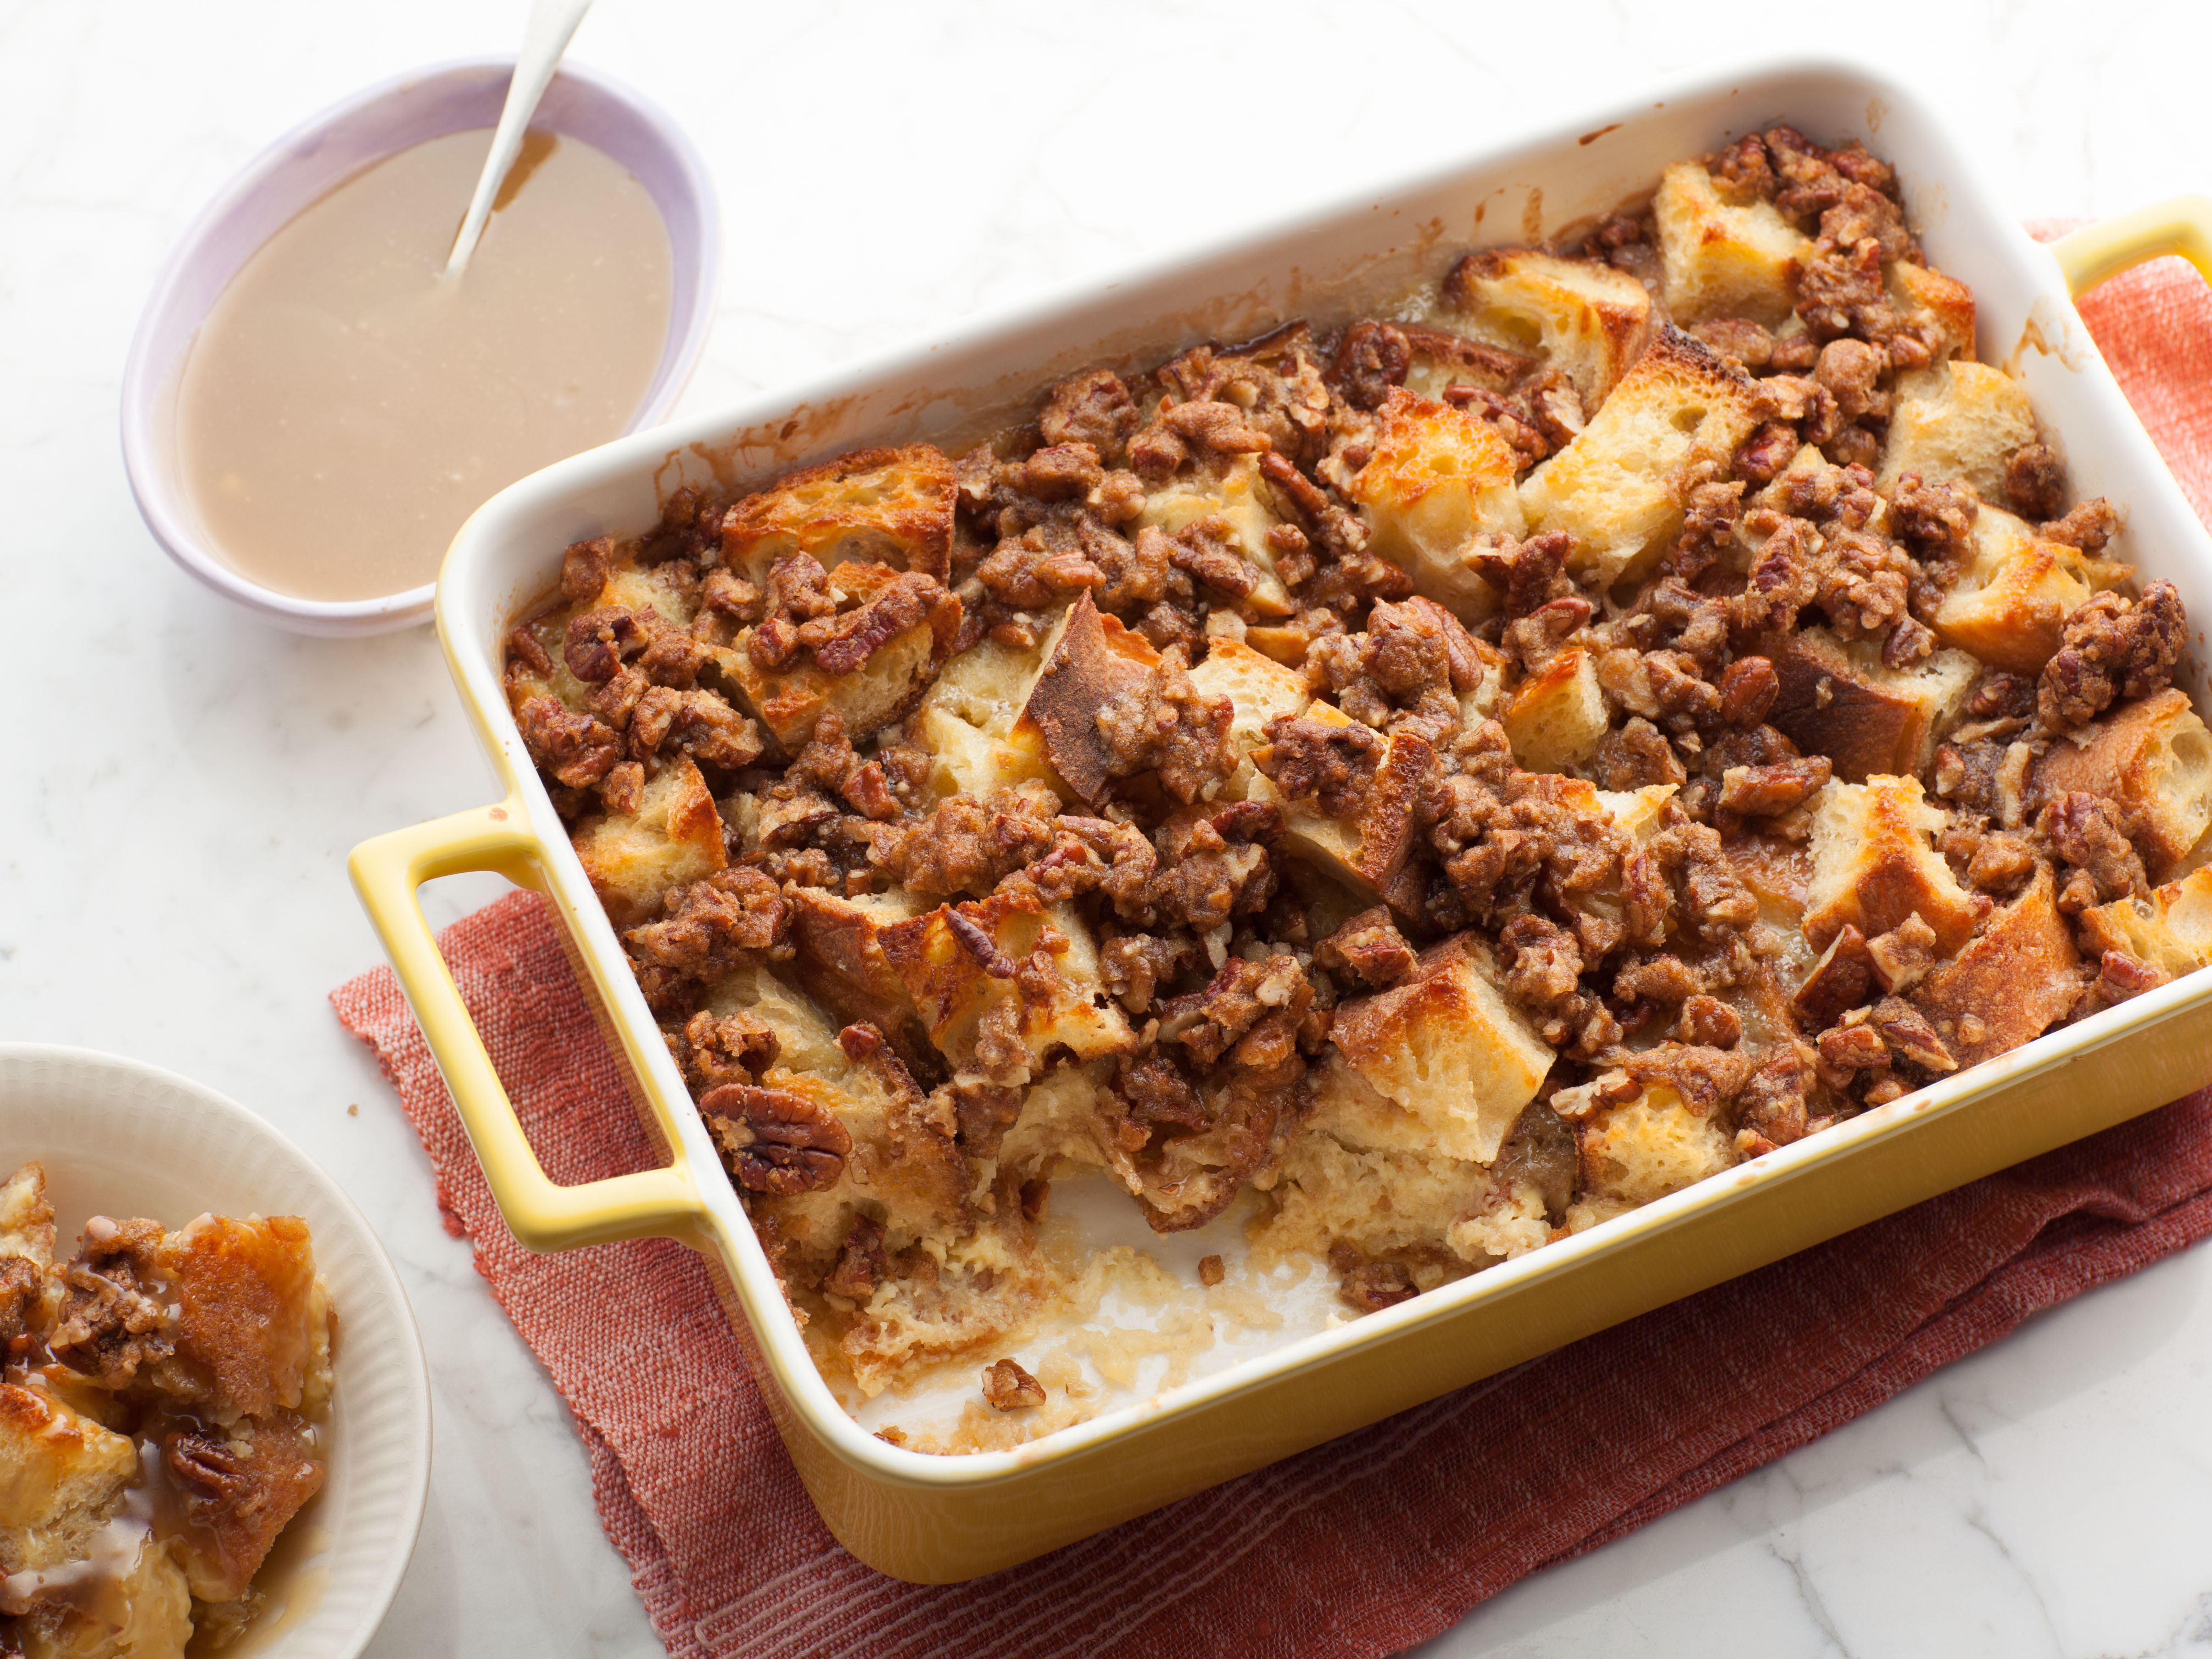 Best Bread Pudding Recipe  The Best Bread Pudding Recipe Paula Deen Food Network